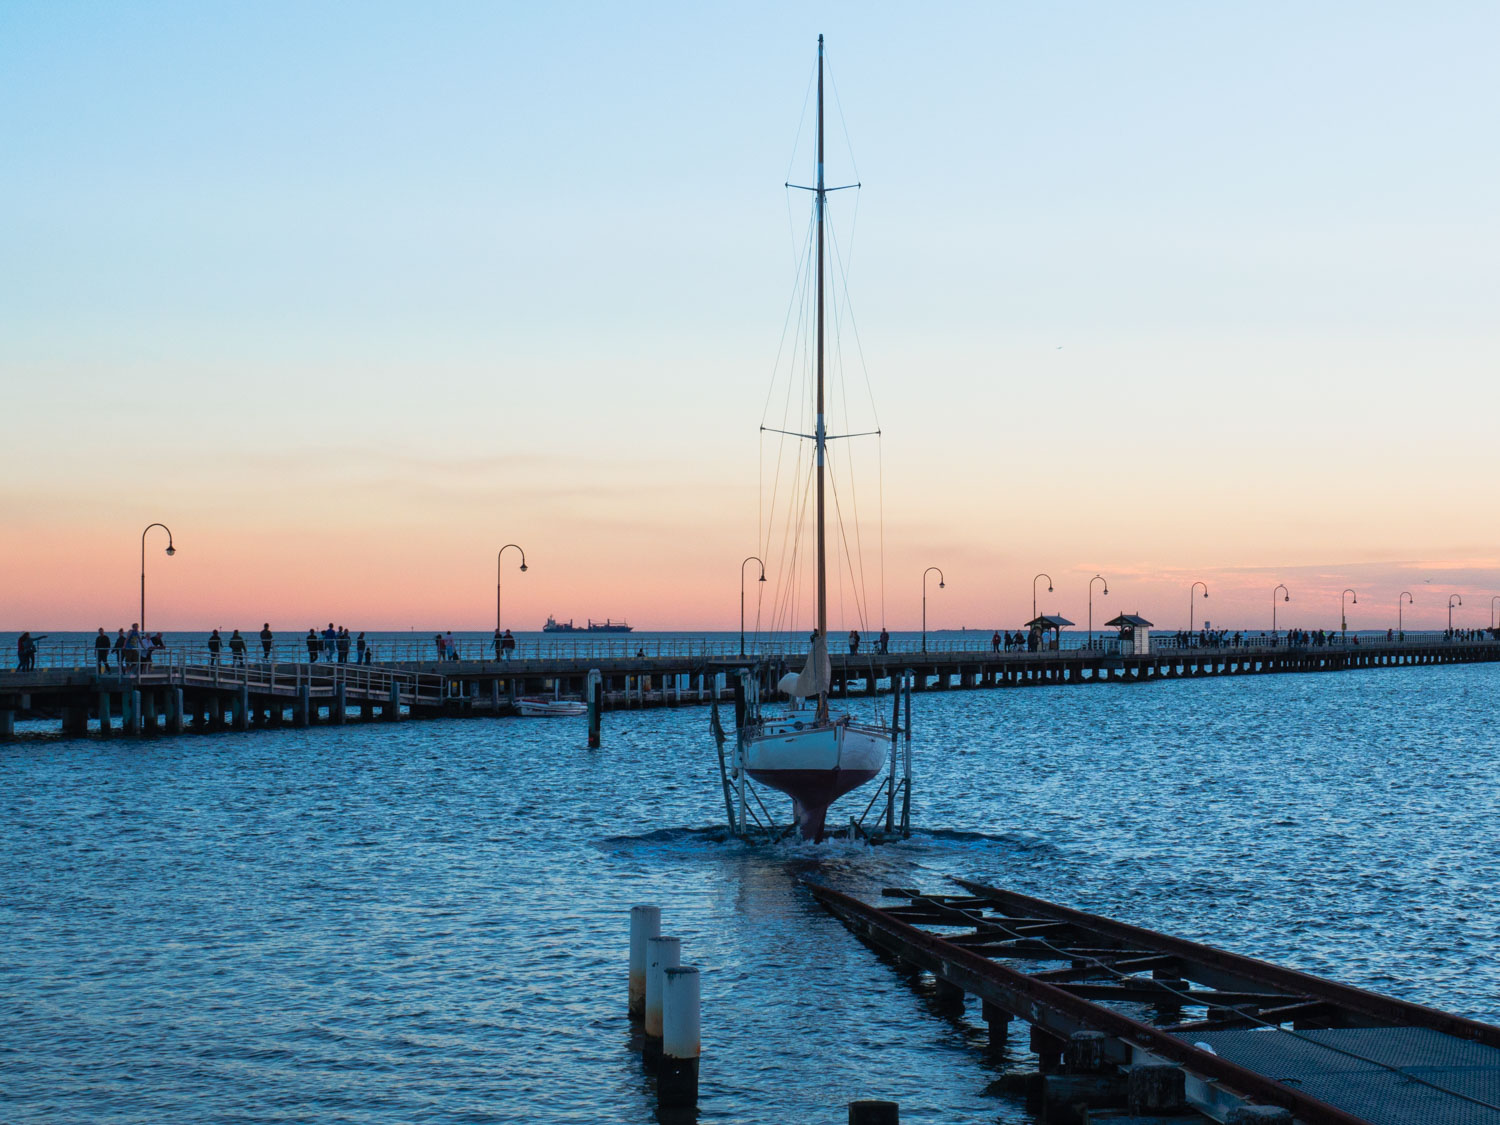 Boat launch by St Kilda Pier, Melbourne.